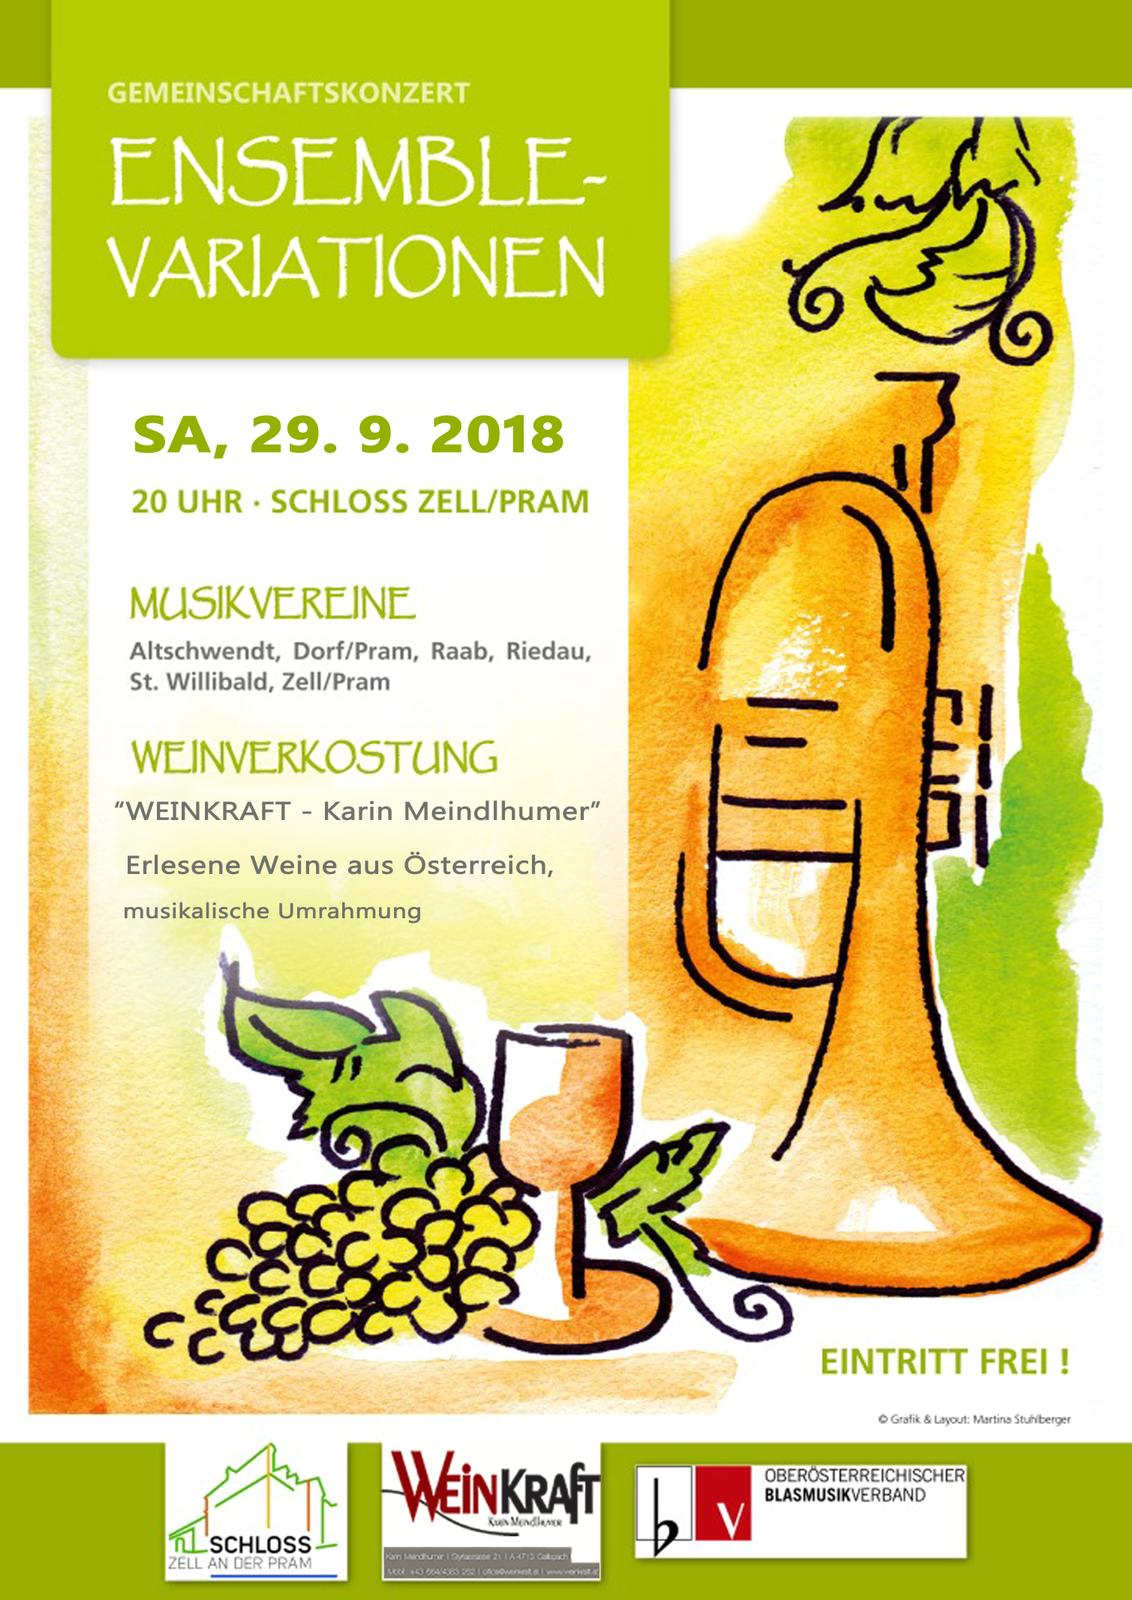 2018 08 plakat ensemblevariationen